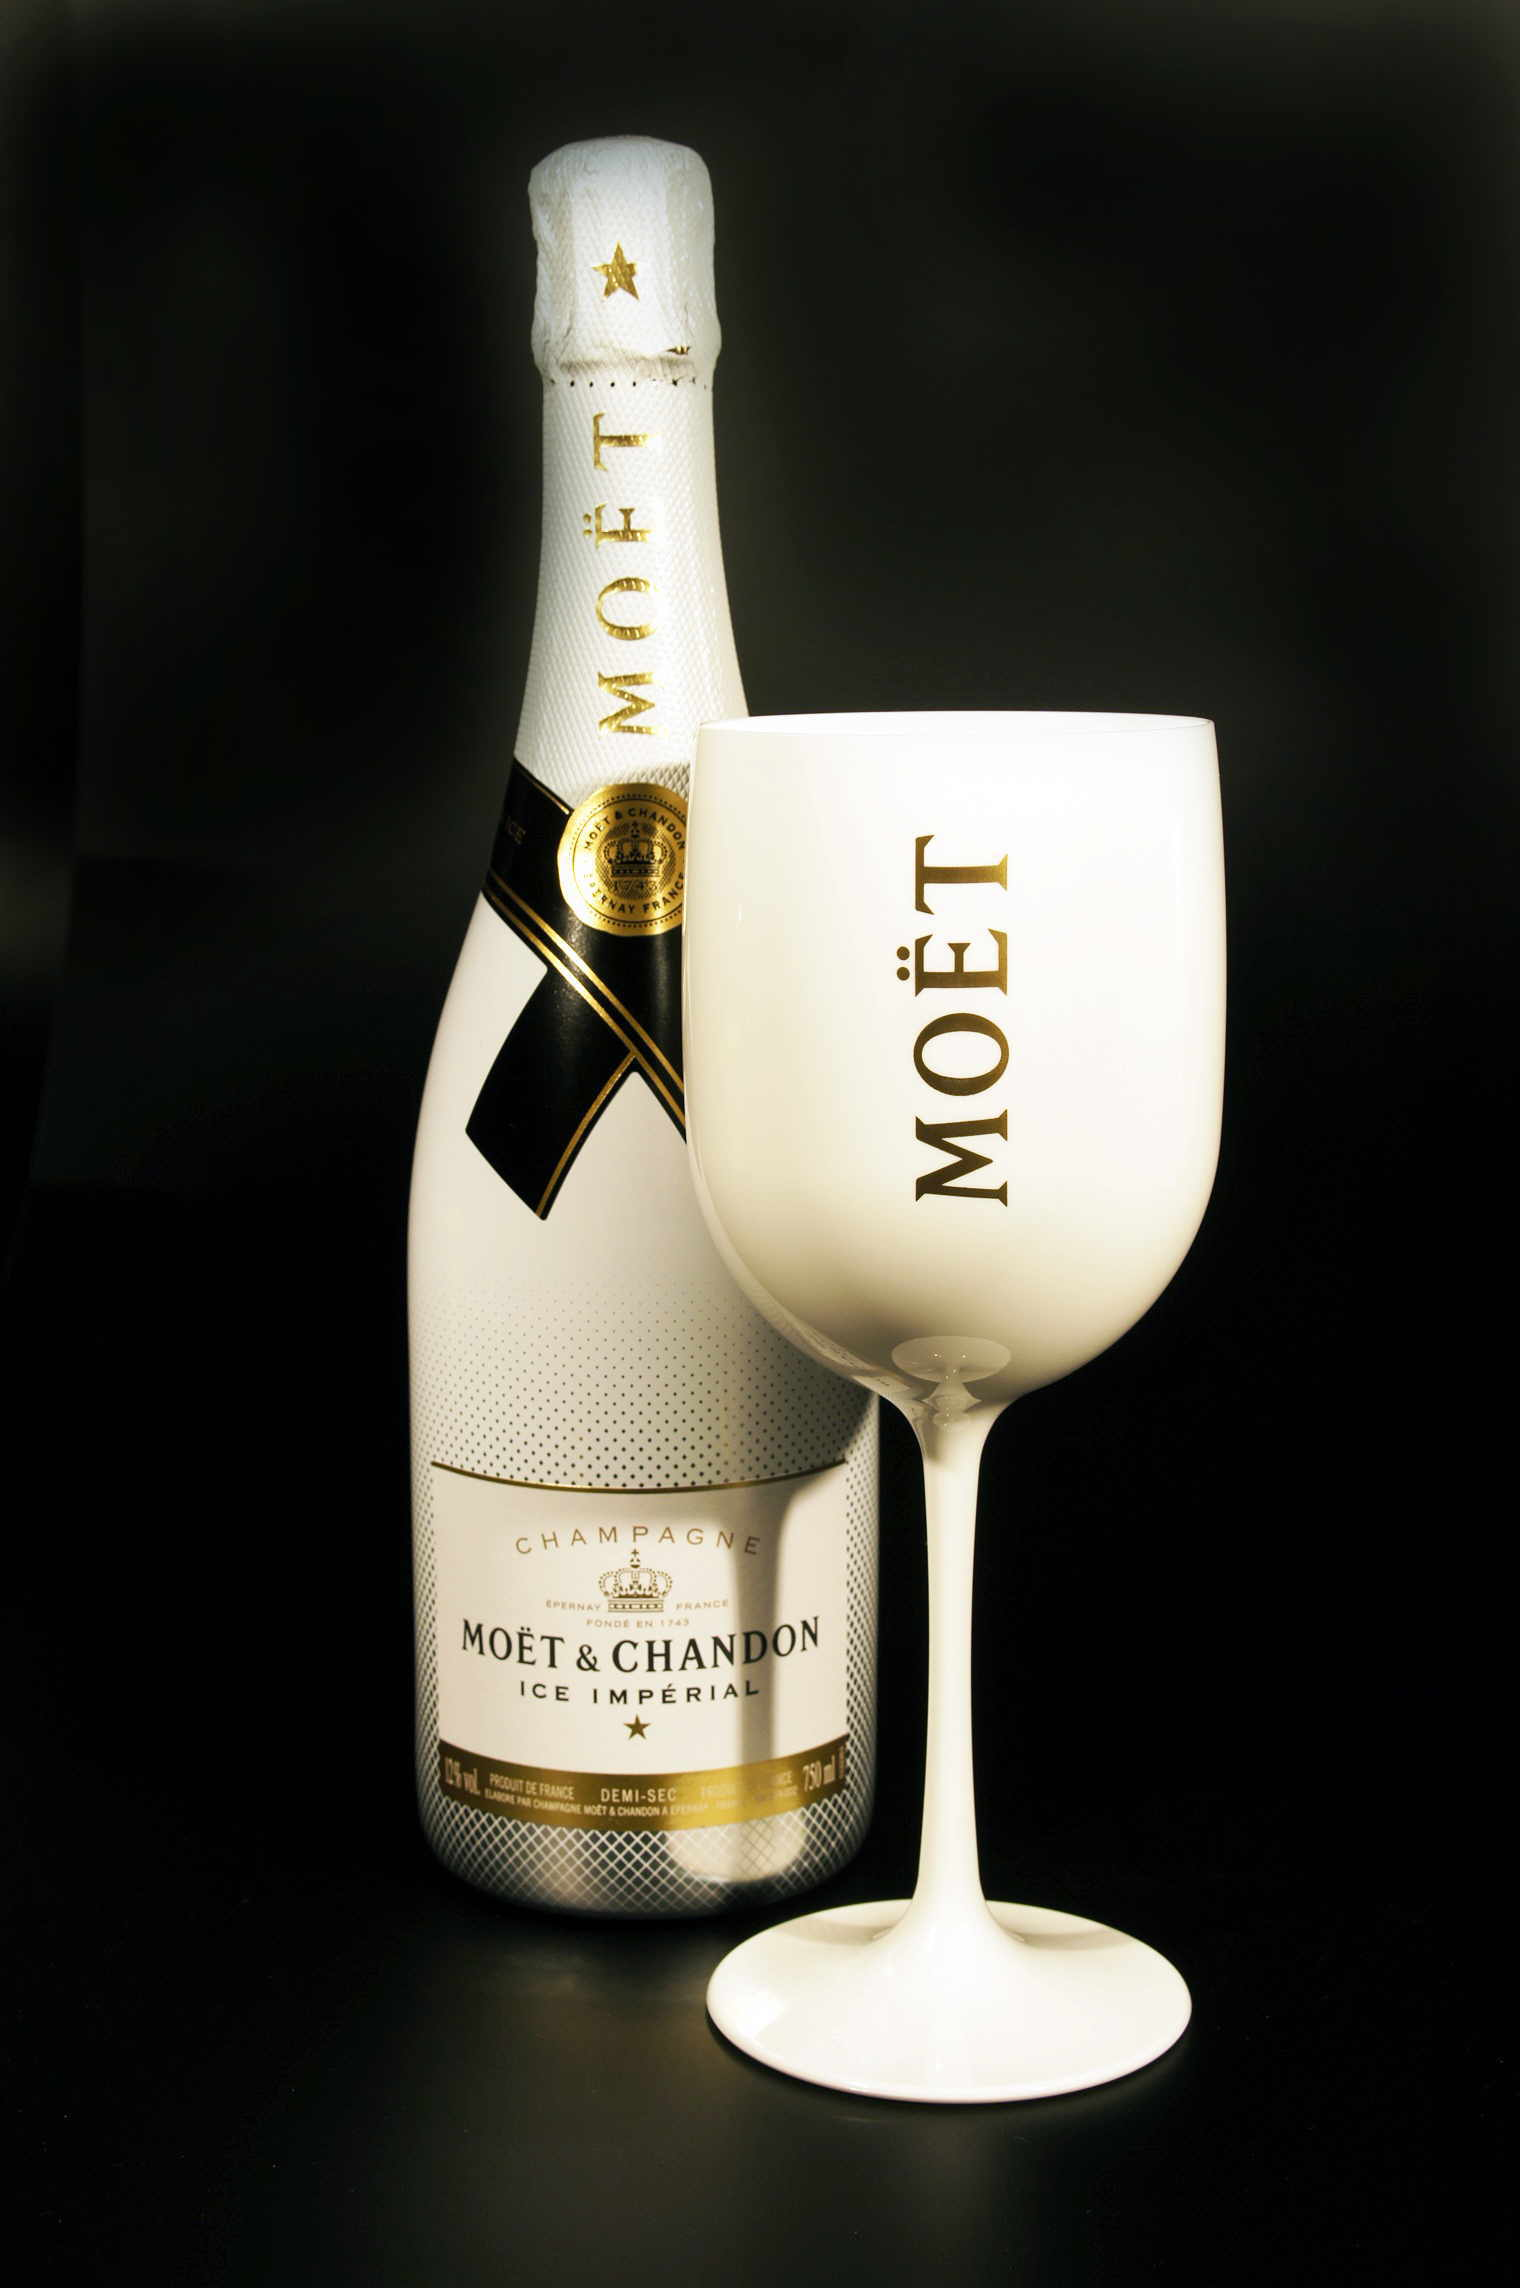 Moët & Chandon ICE glas